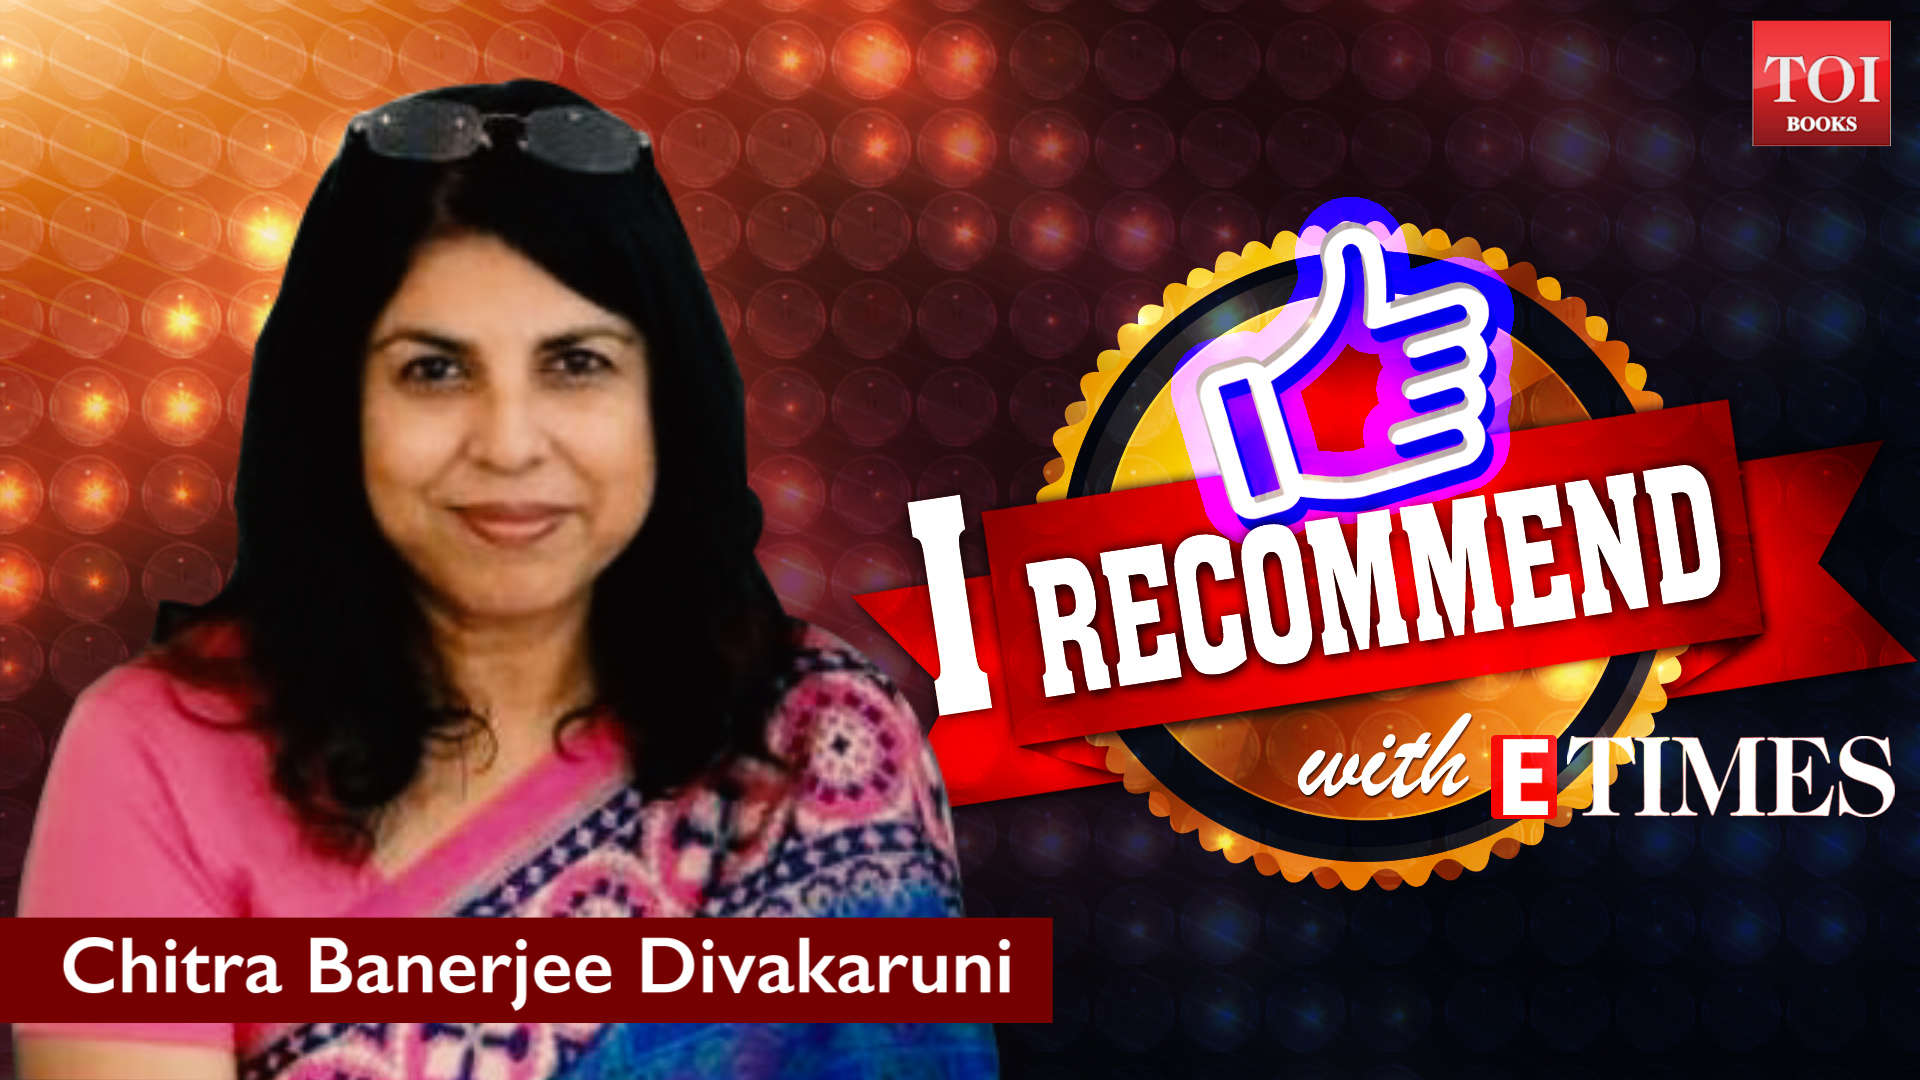 i-recommend-chitra-banerjee-divakaruni-shares-her-book-recommendations